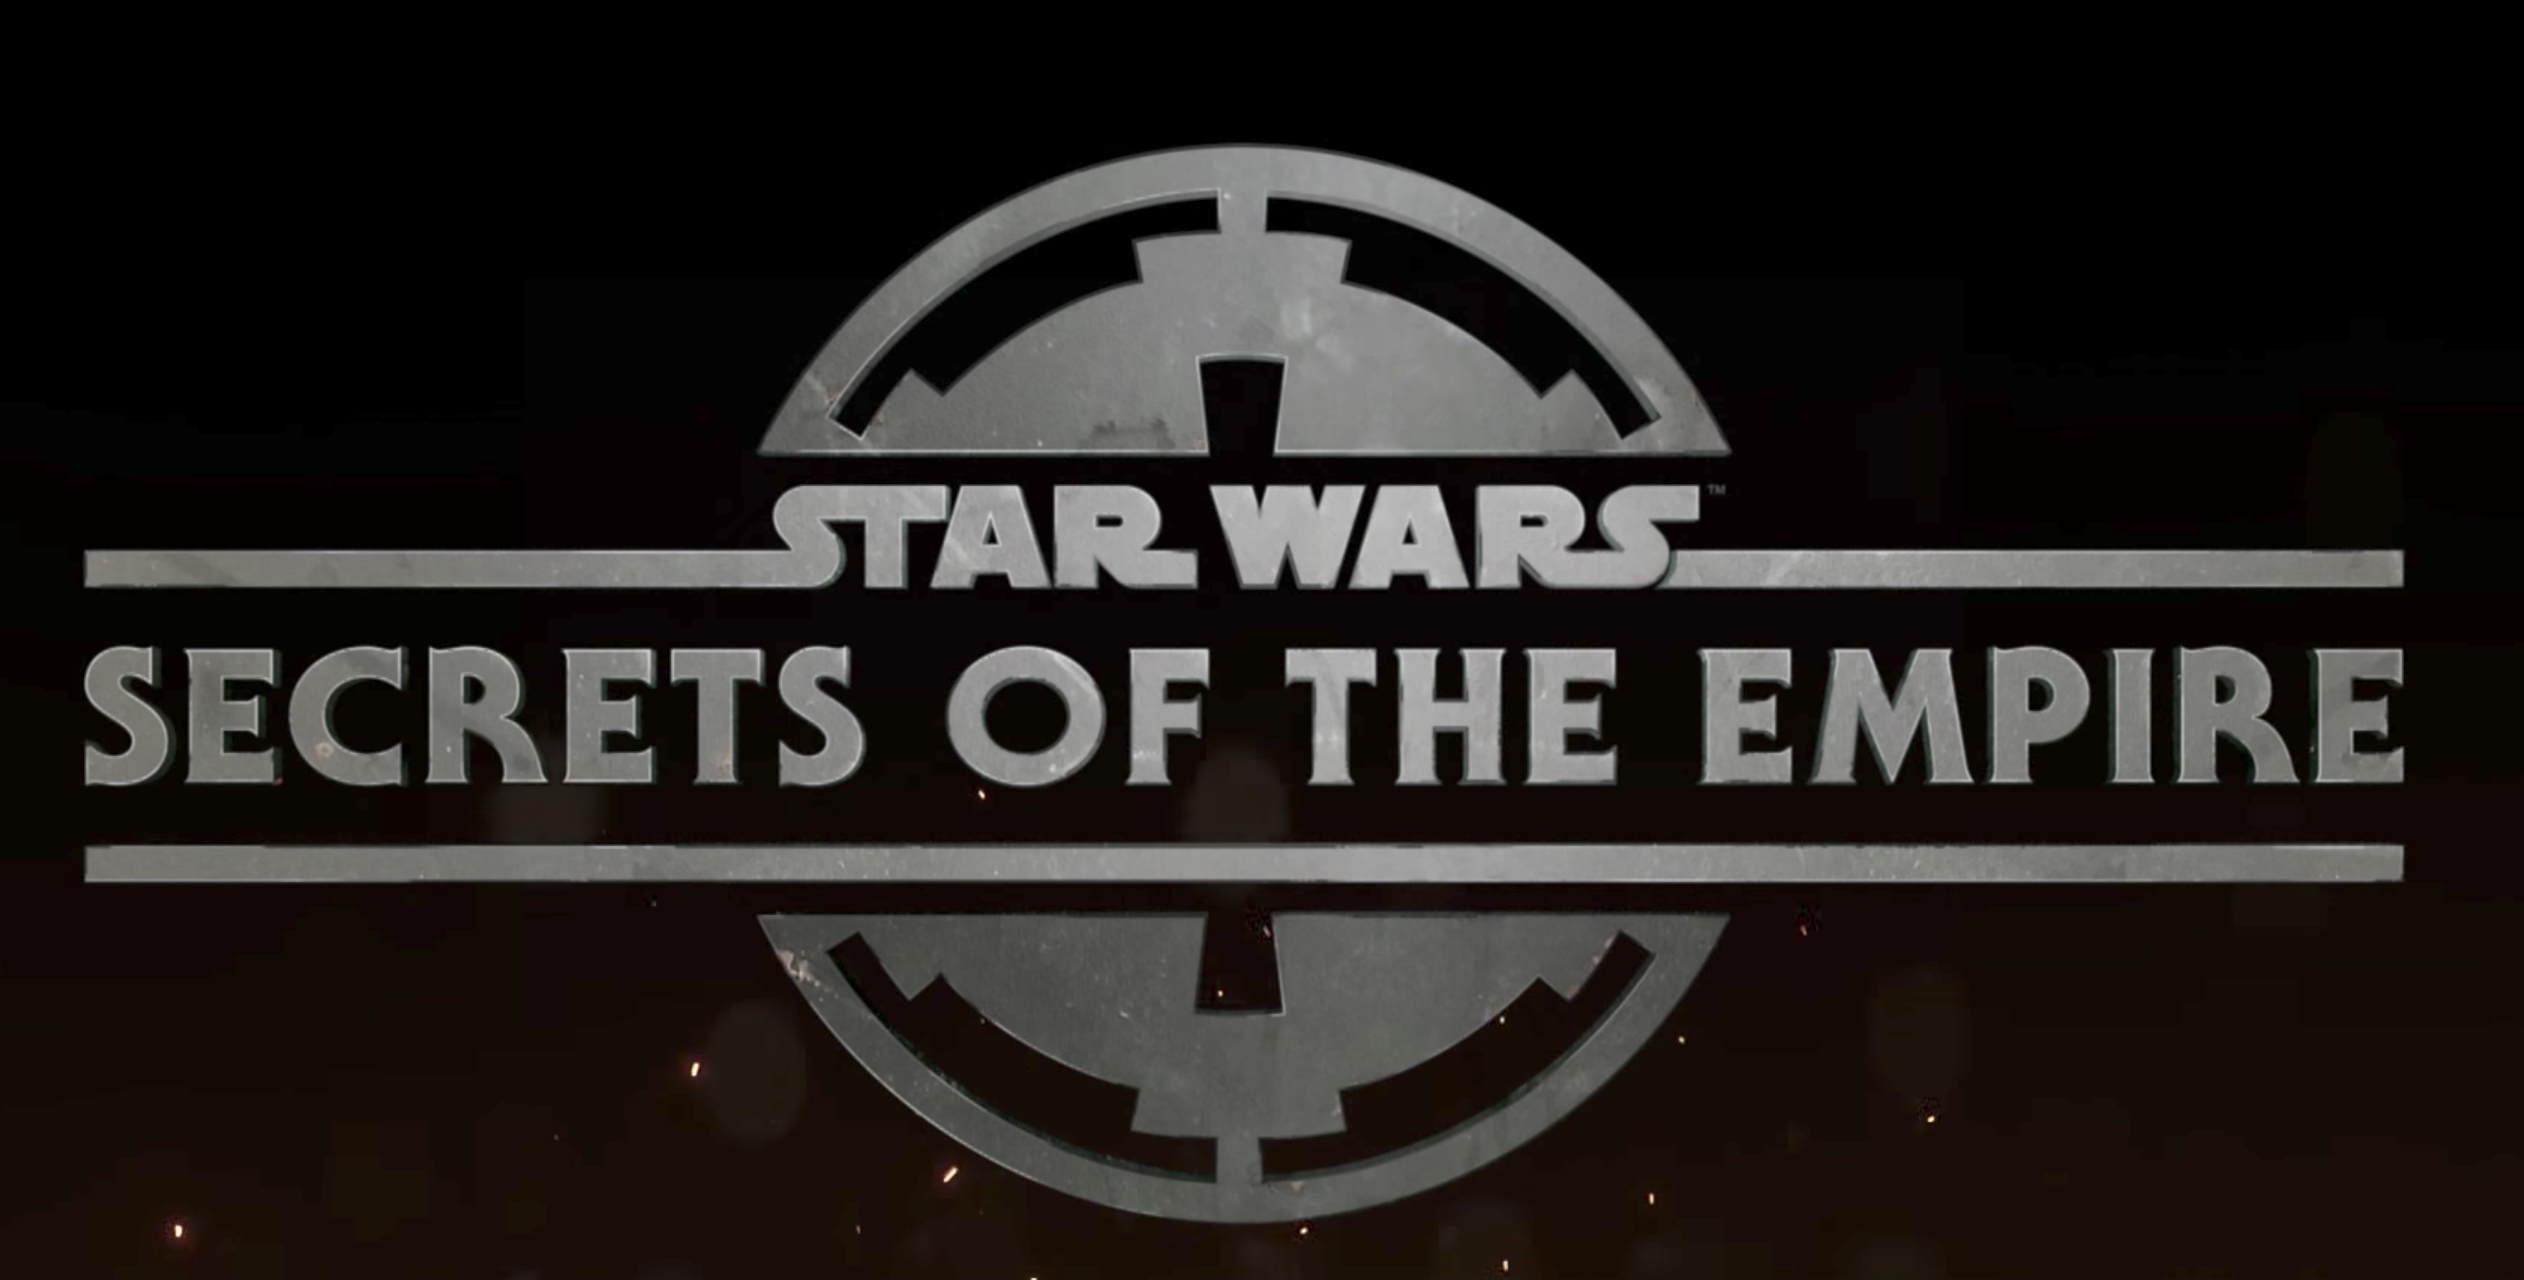 Here S The Trailer For The New Star Wars Vr Experience Coming To